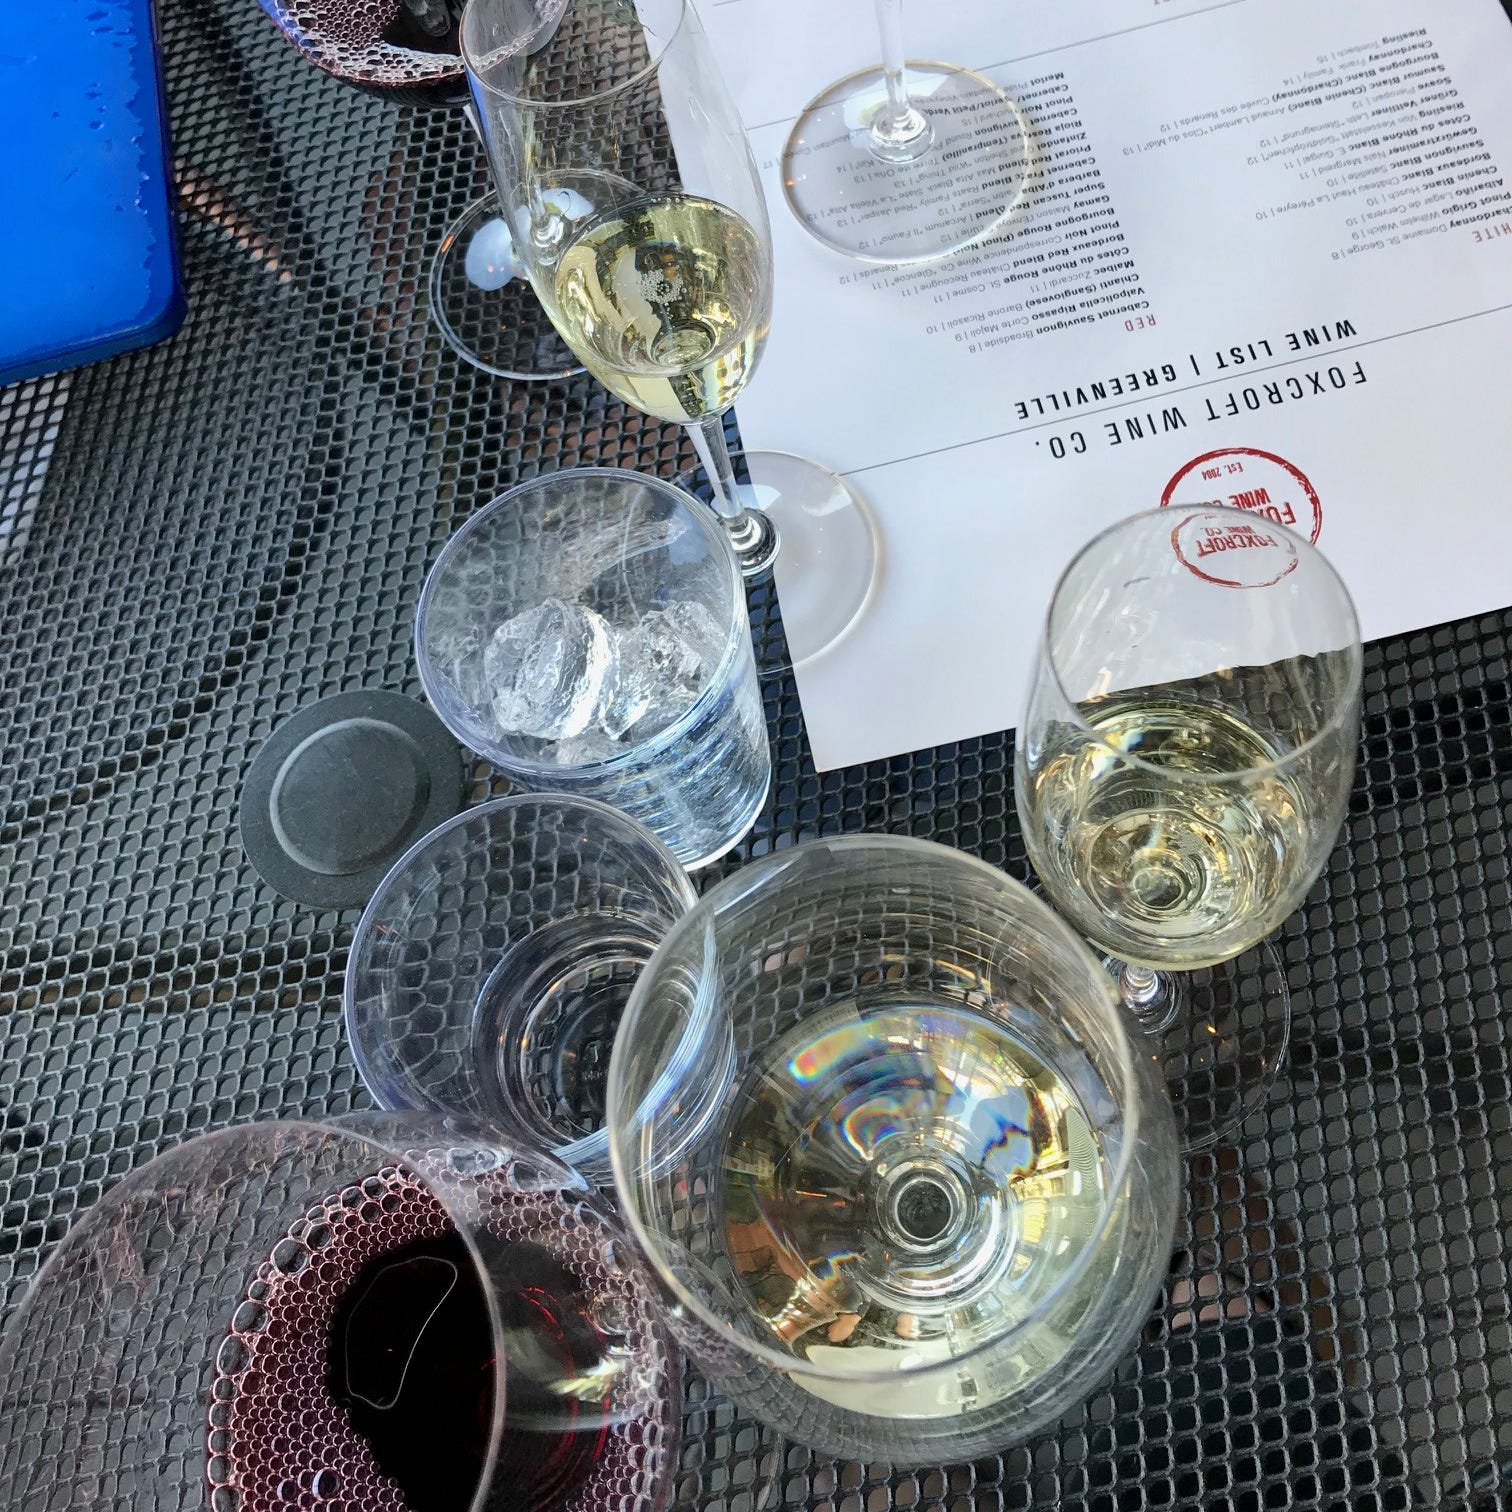 Wine in warmer months? No sweat Greenville. 4 tips and 14 places to enjoy a glass outside.